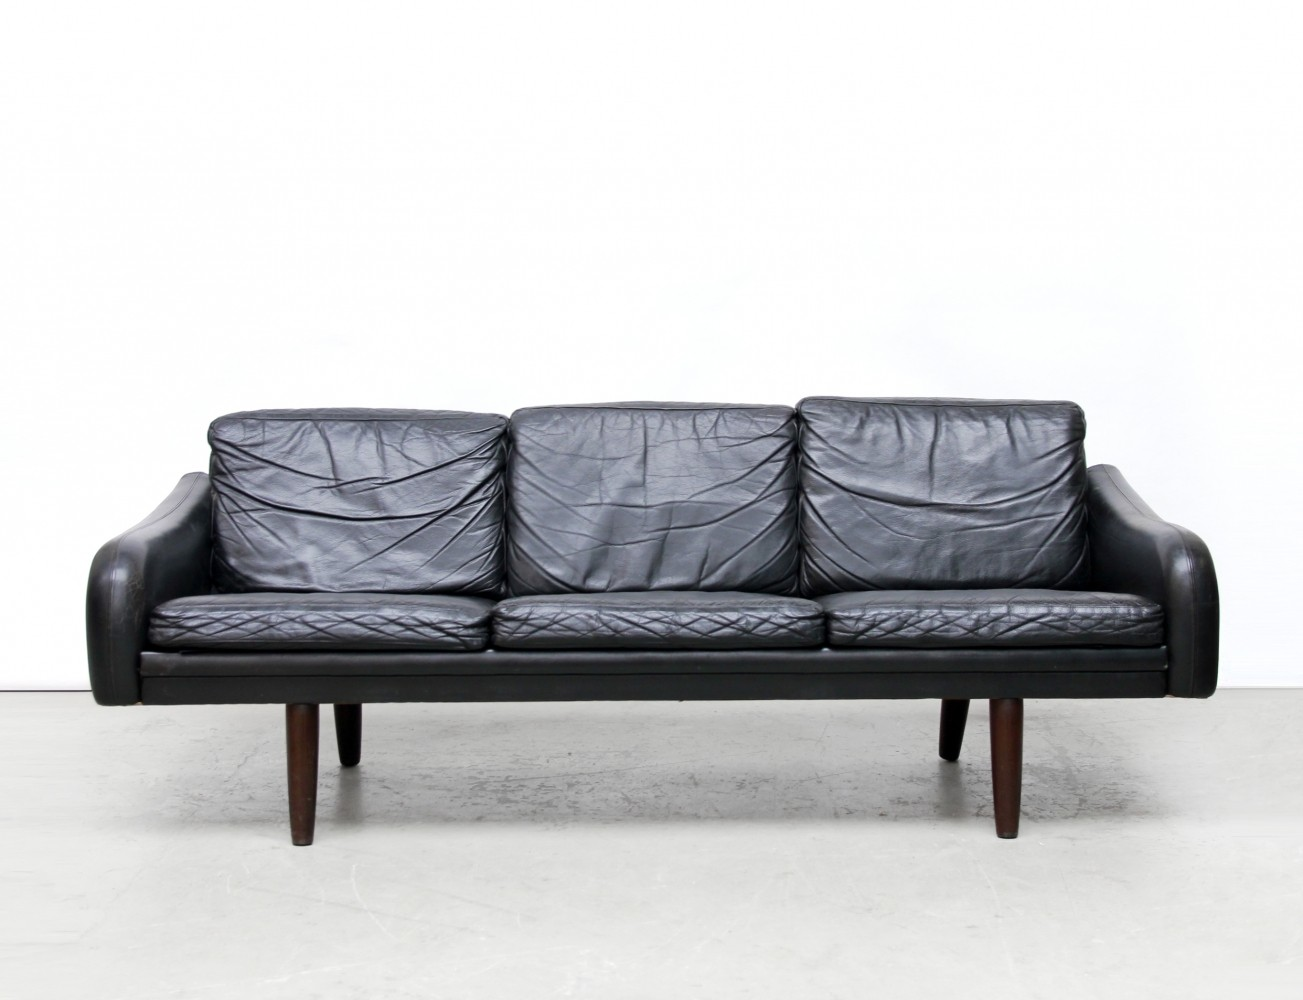 black leather danish design sofa 1950s 70049. Black Bedroom Furniture Sets. Home Design Ideas